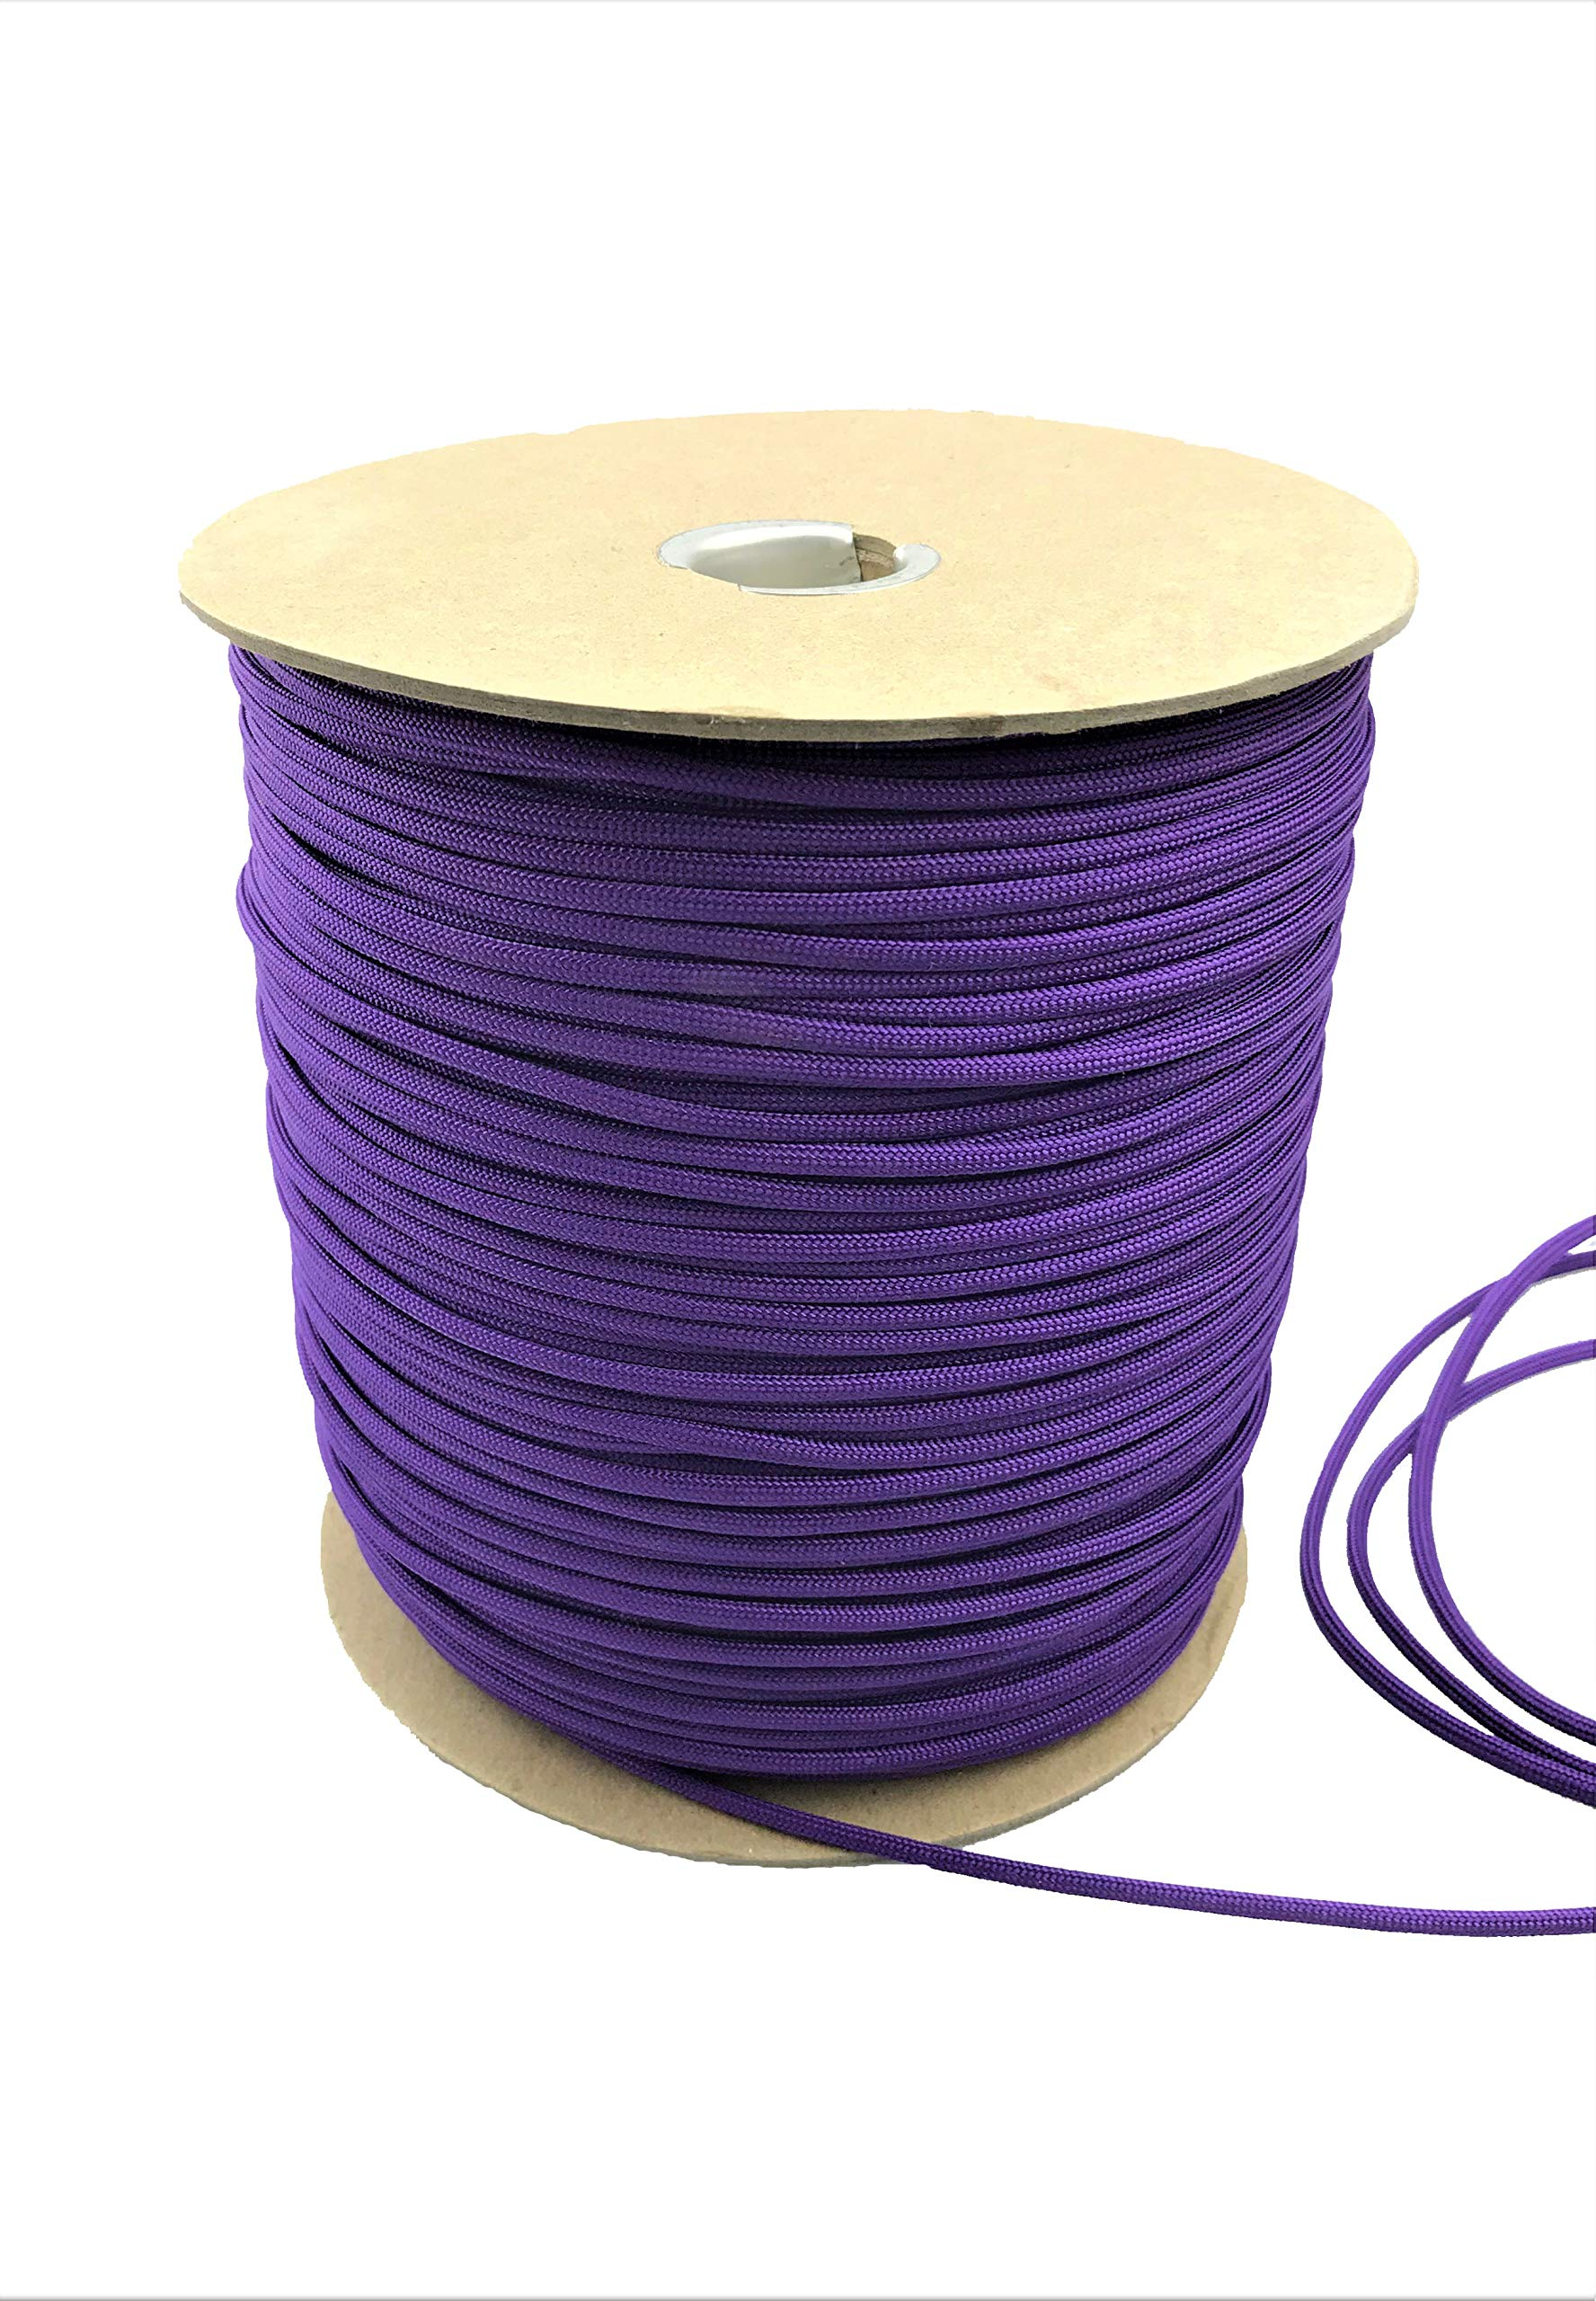 Paracord 550 Type III 7 Strand Multi-Purpose Parachute Cord in 1000 and 100 Foot Spools. Used for Camping, Hiking, Boating, Survival, and Crafting. 100% Nylon-Made in the USA (Purple, 1000)